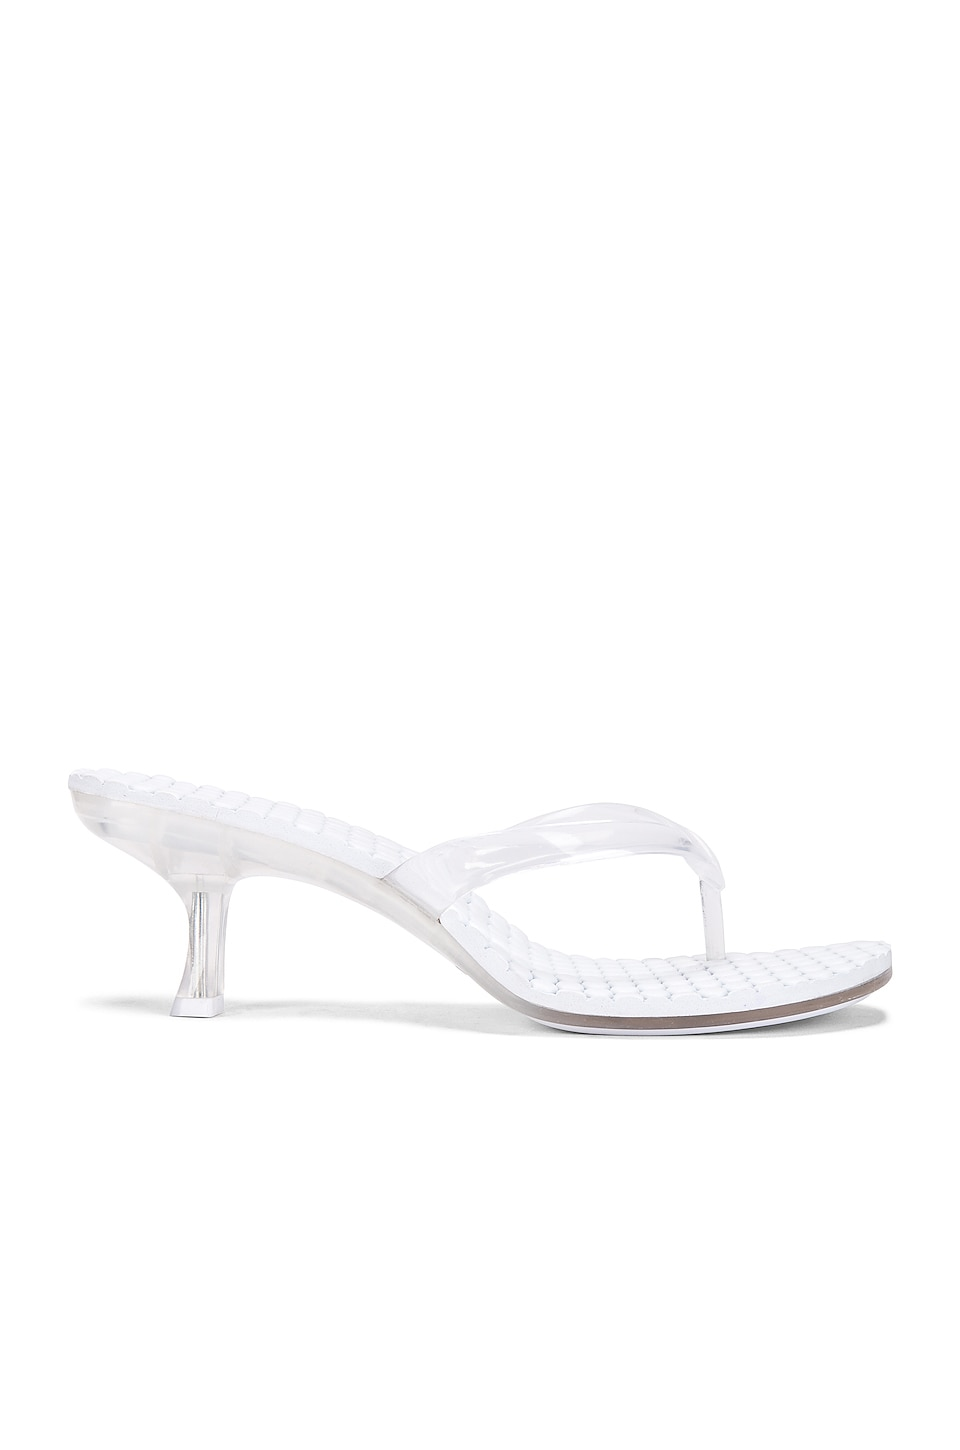 Jeffrey Campbell Mini Heel Thong in Clear